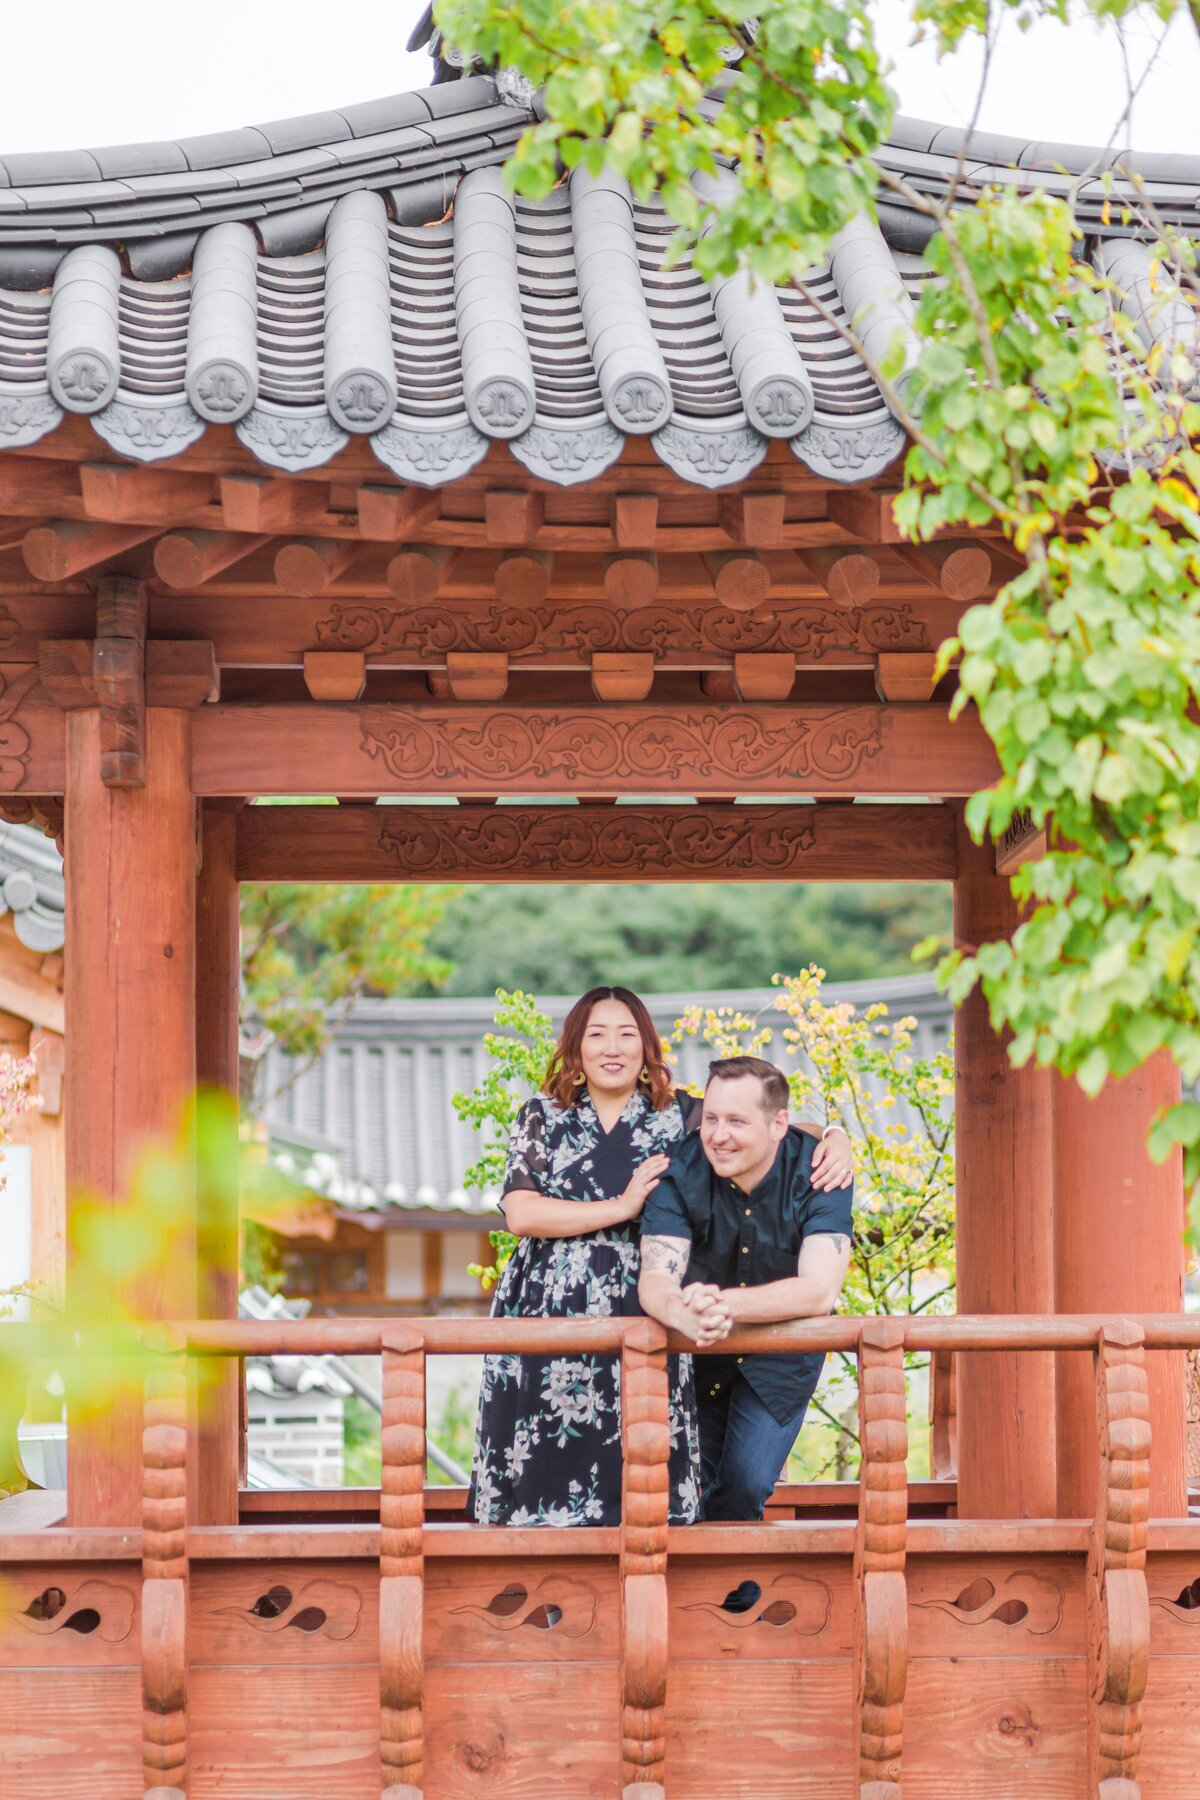 Seoul-South-Korea-Bridal-Engagement-Anniversary-Session-0026